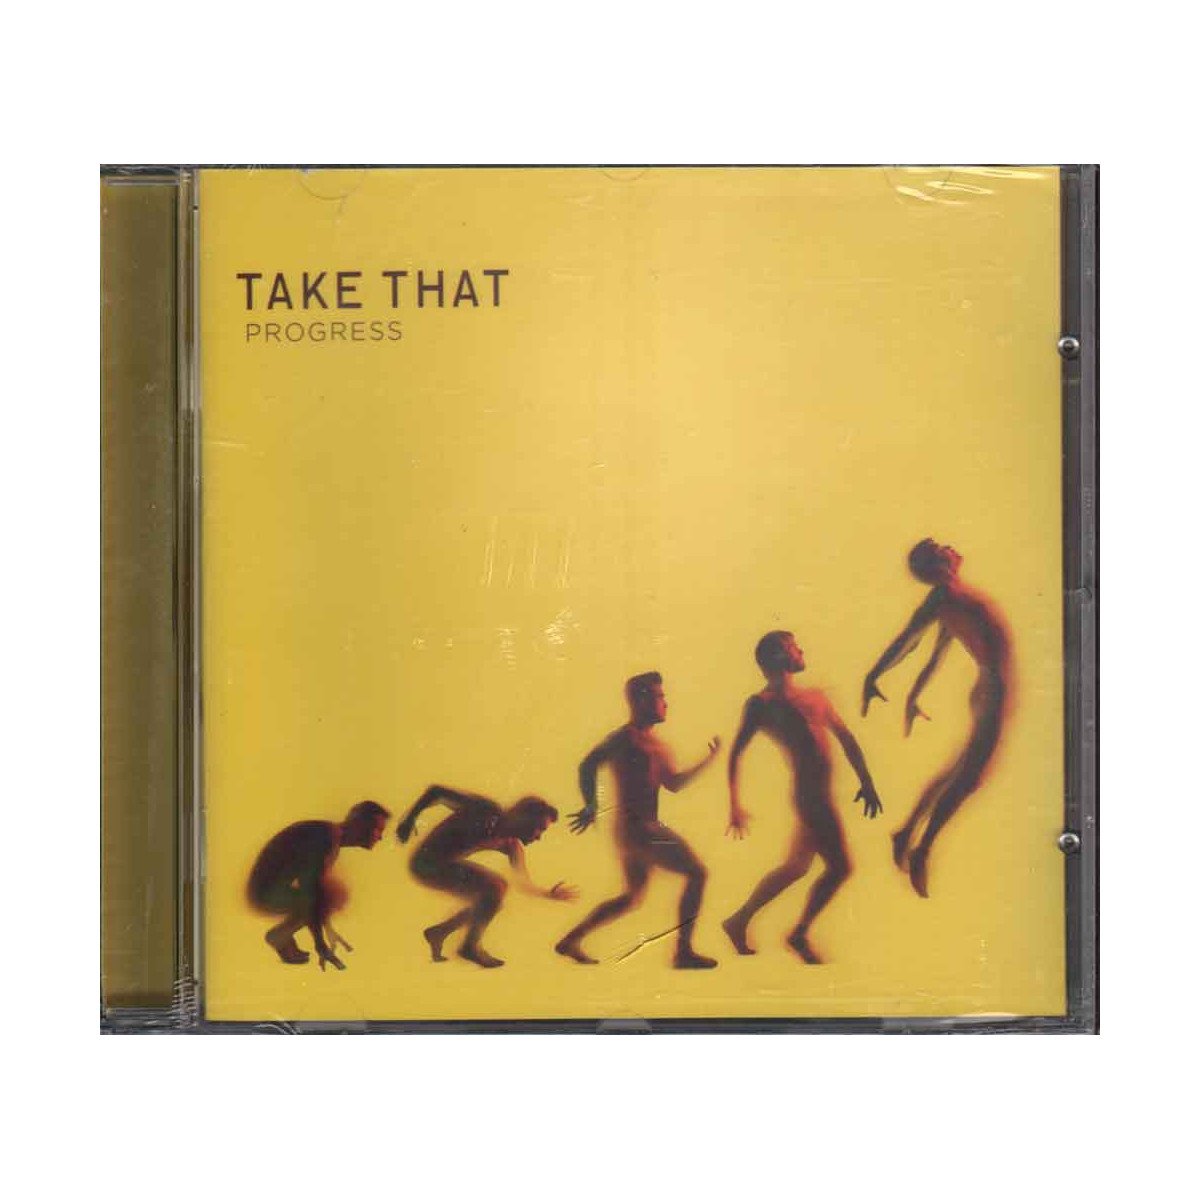 Take That CD Progress Nuovo Sigillato 0602527484747